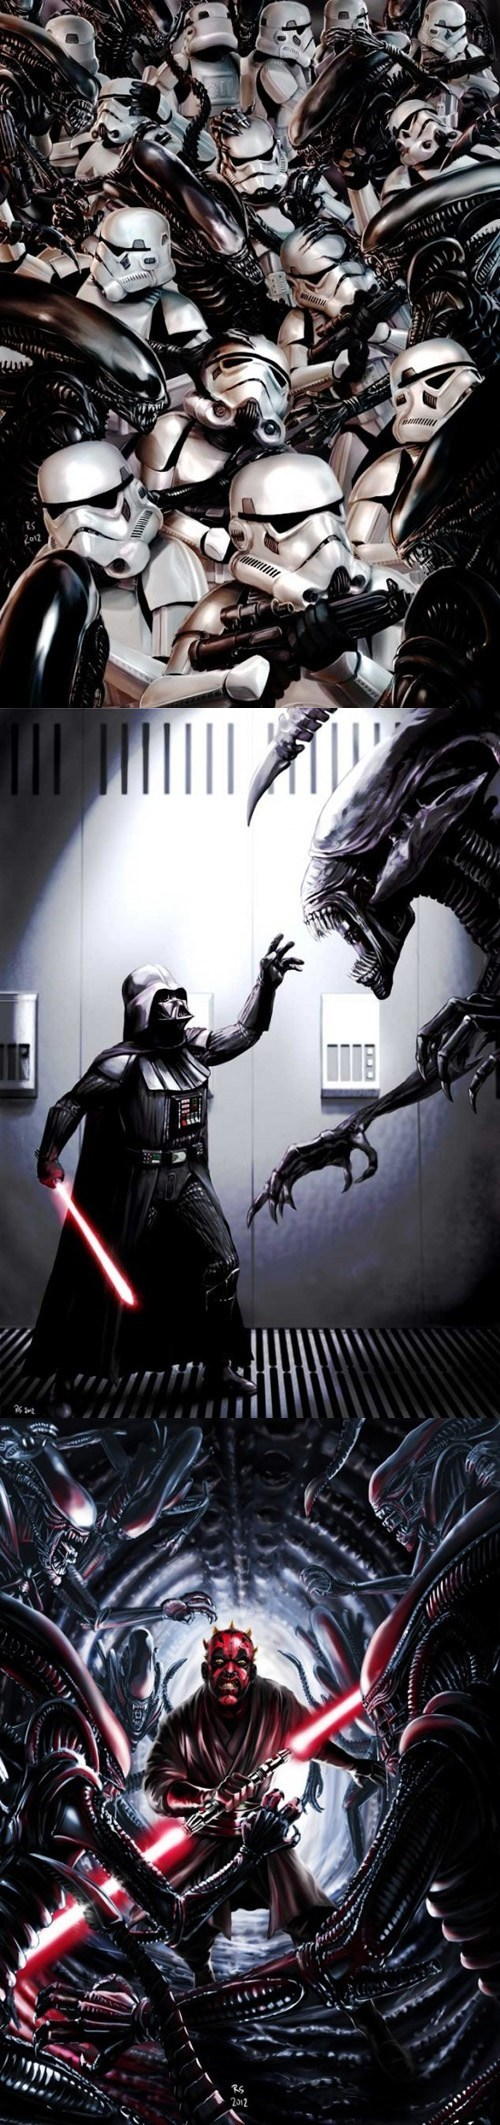 darth maul,Aliens,star wars,alien queen,fan art,stormtrooper,darth vader,xenomorphs